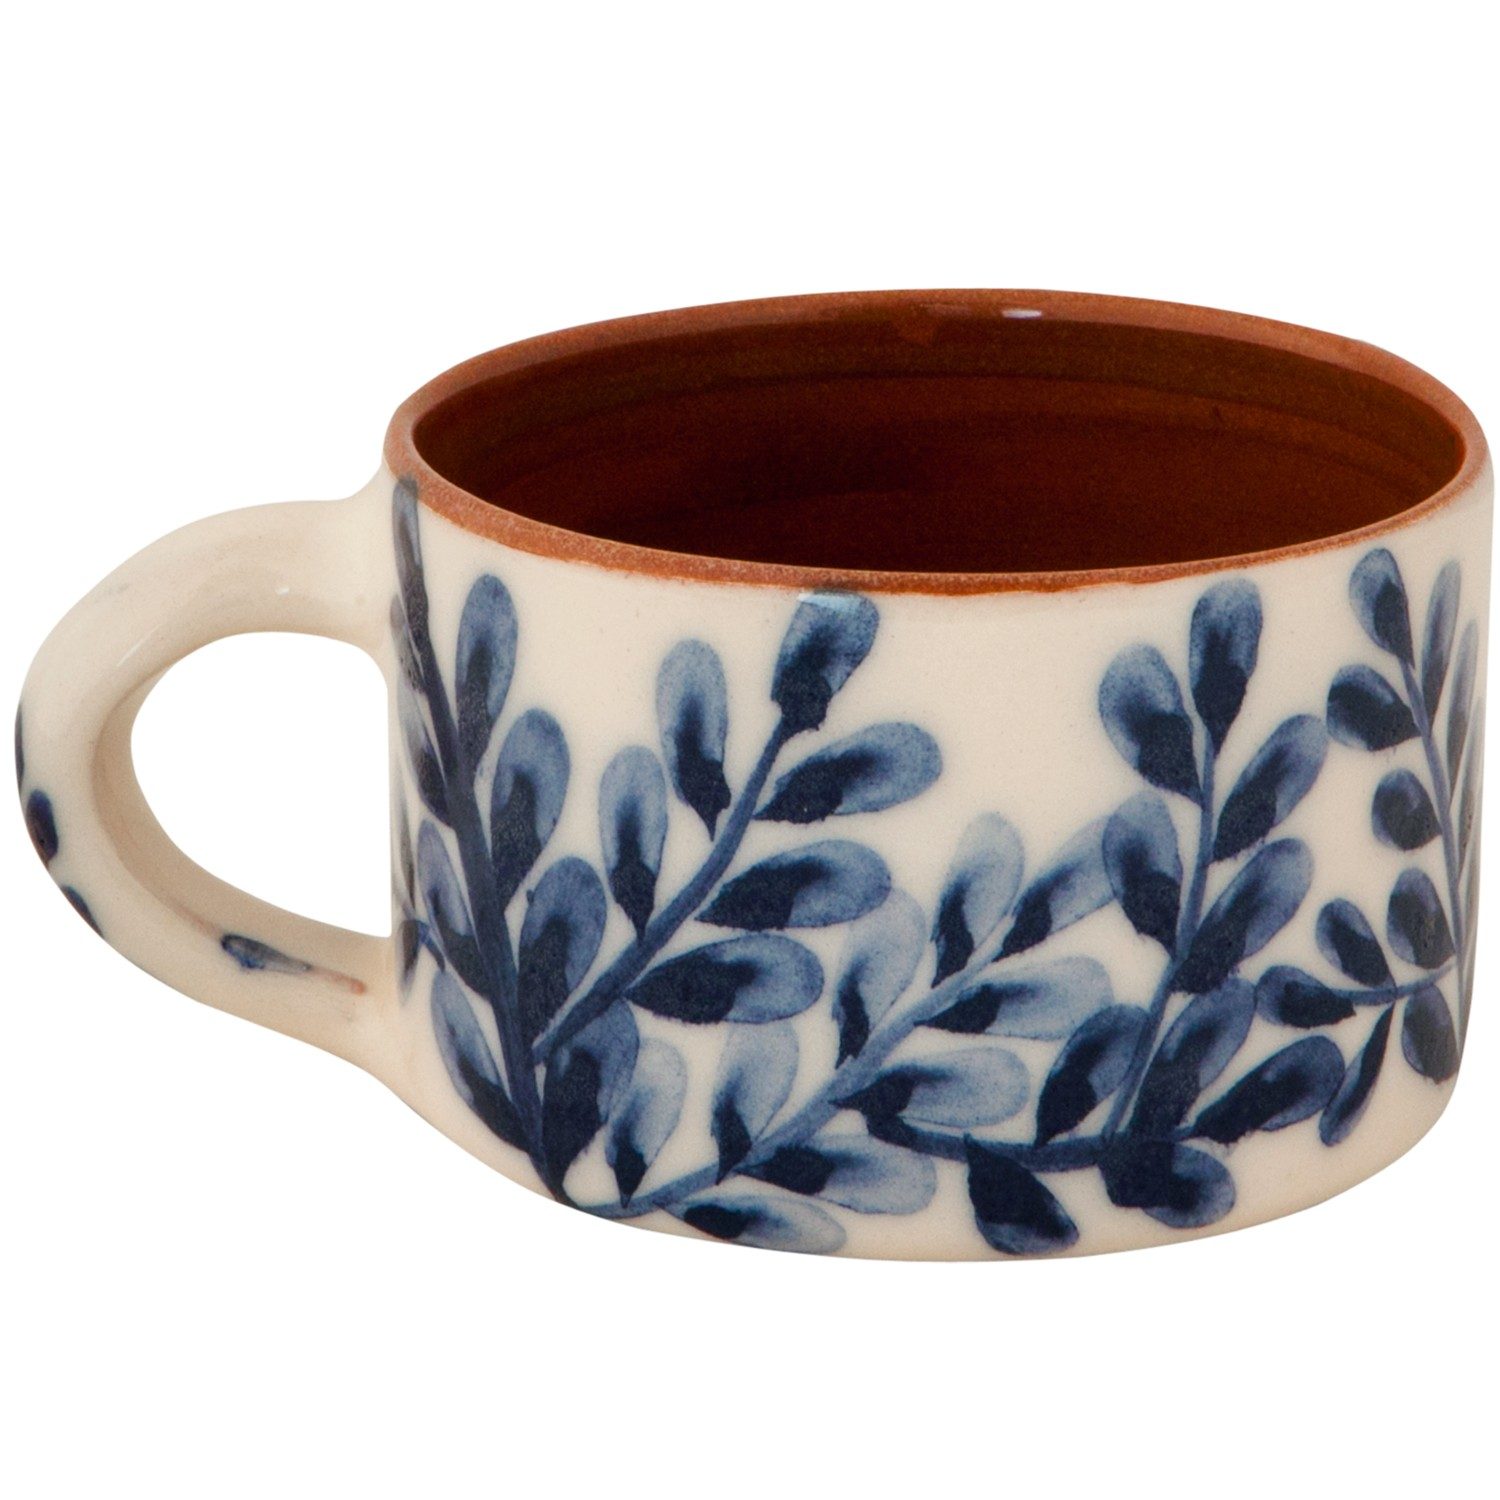 Unique Pottery Coffee Mugs Handmade Pottery Coffee Mugs With Blue And White Flowers